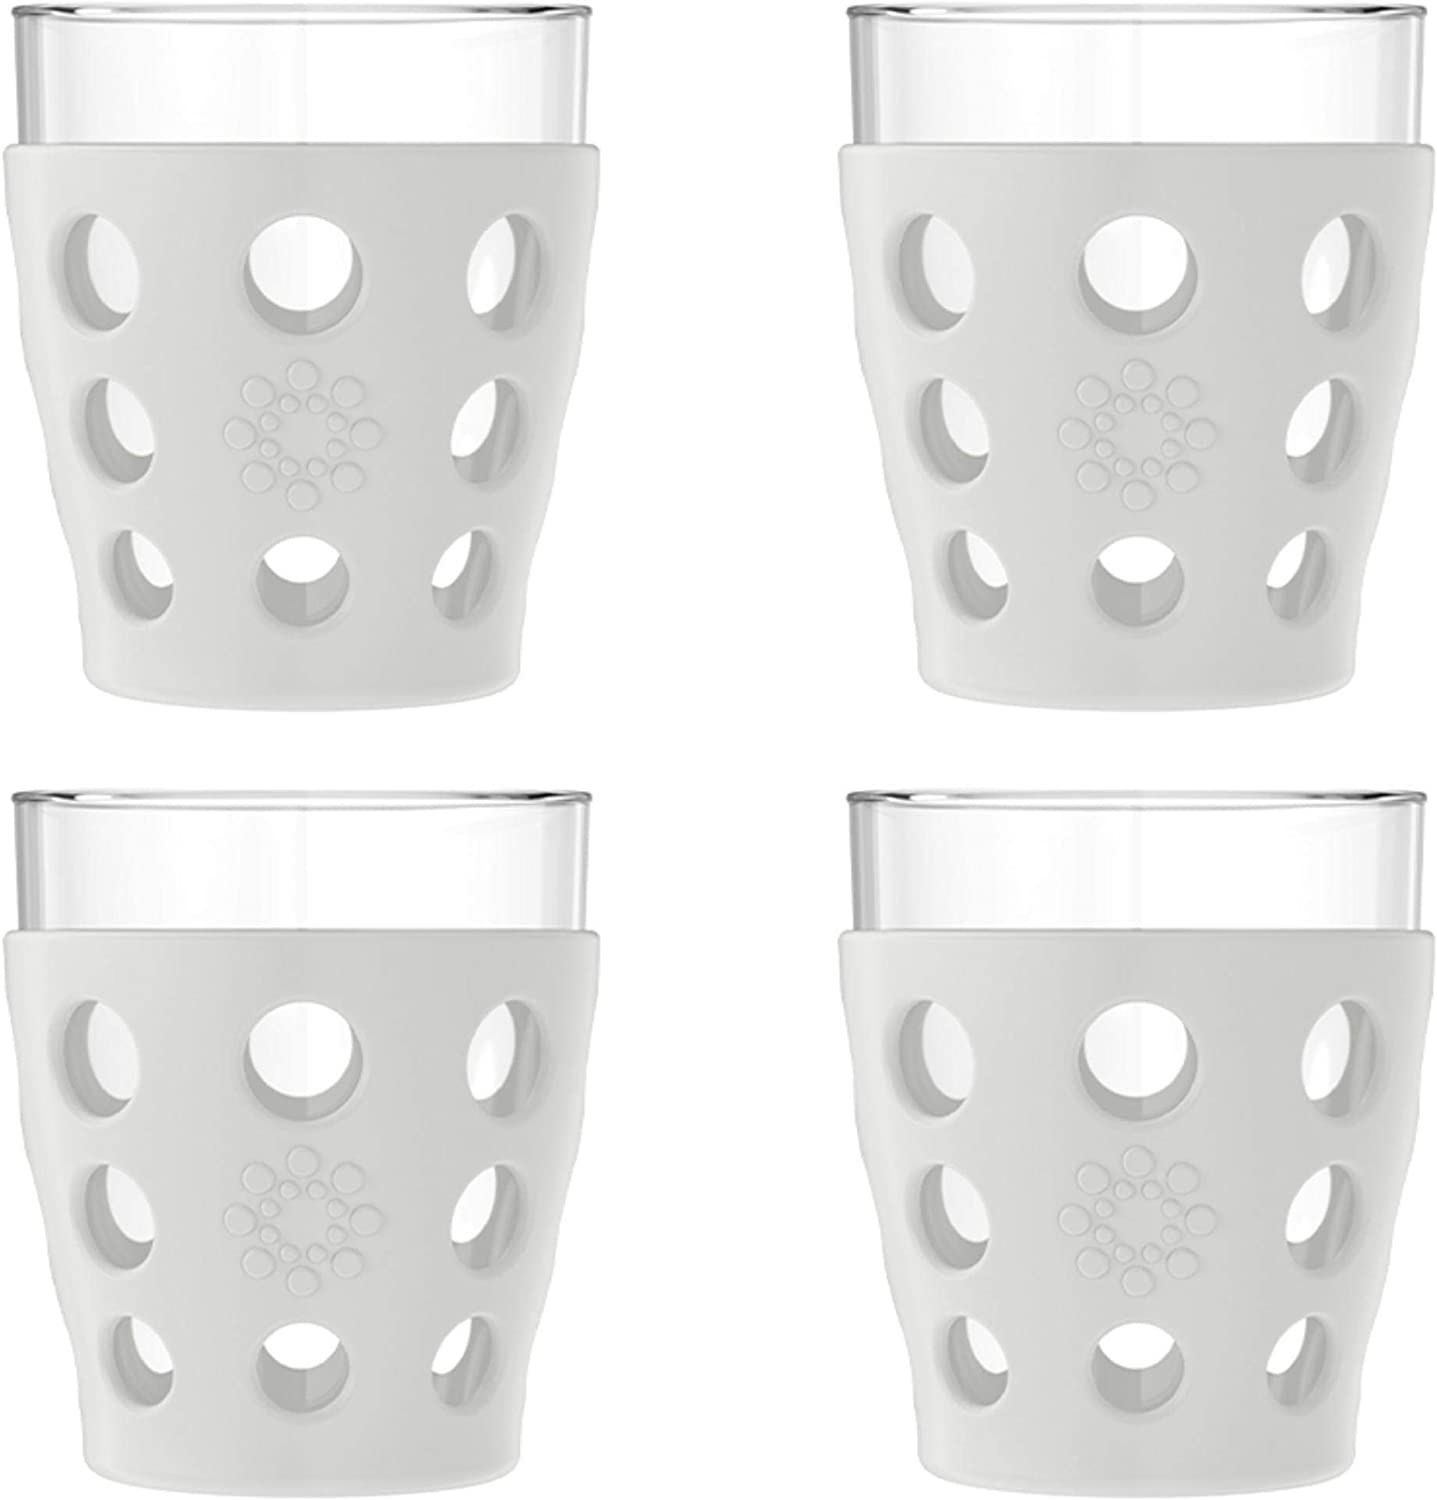 Lifefactory 10-Ounce BPA-Free Indoor/Outdoor Protective Silicone Sleeve Beverage Glass, 4-Pack, Stone Gray